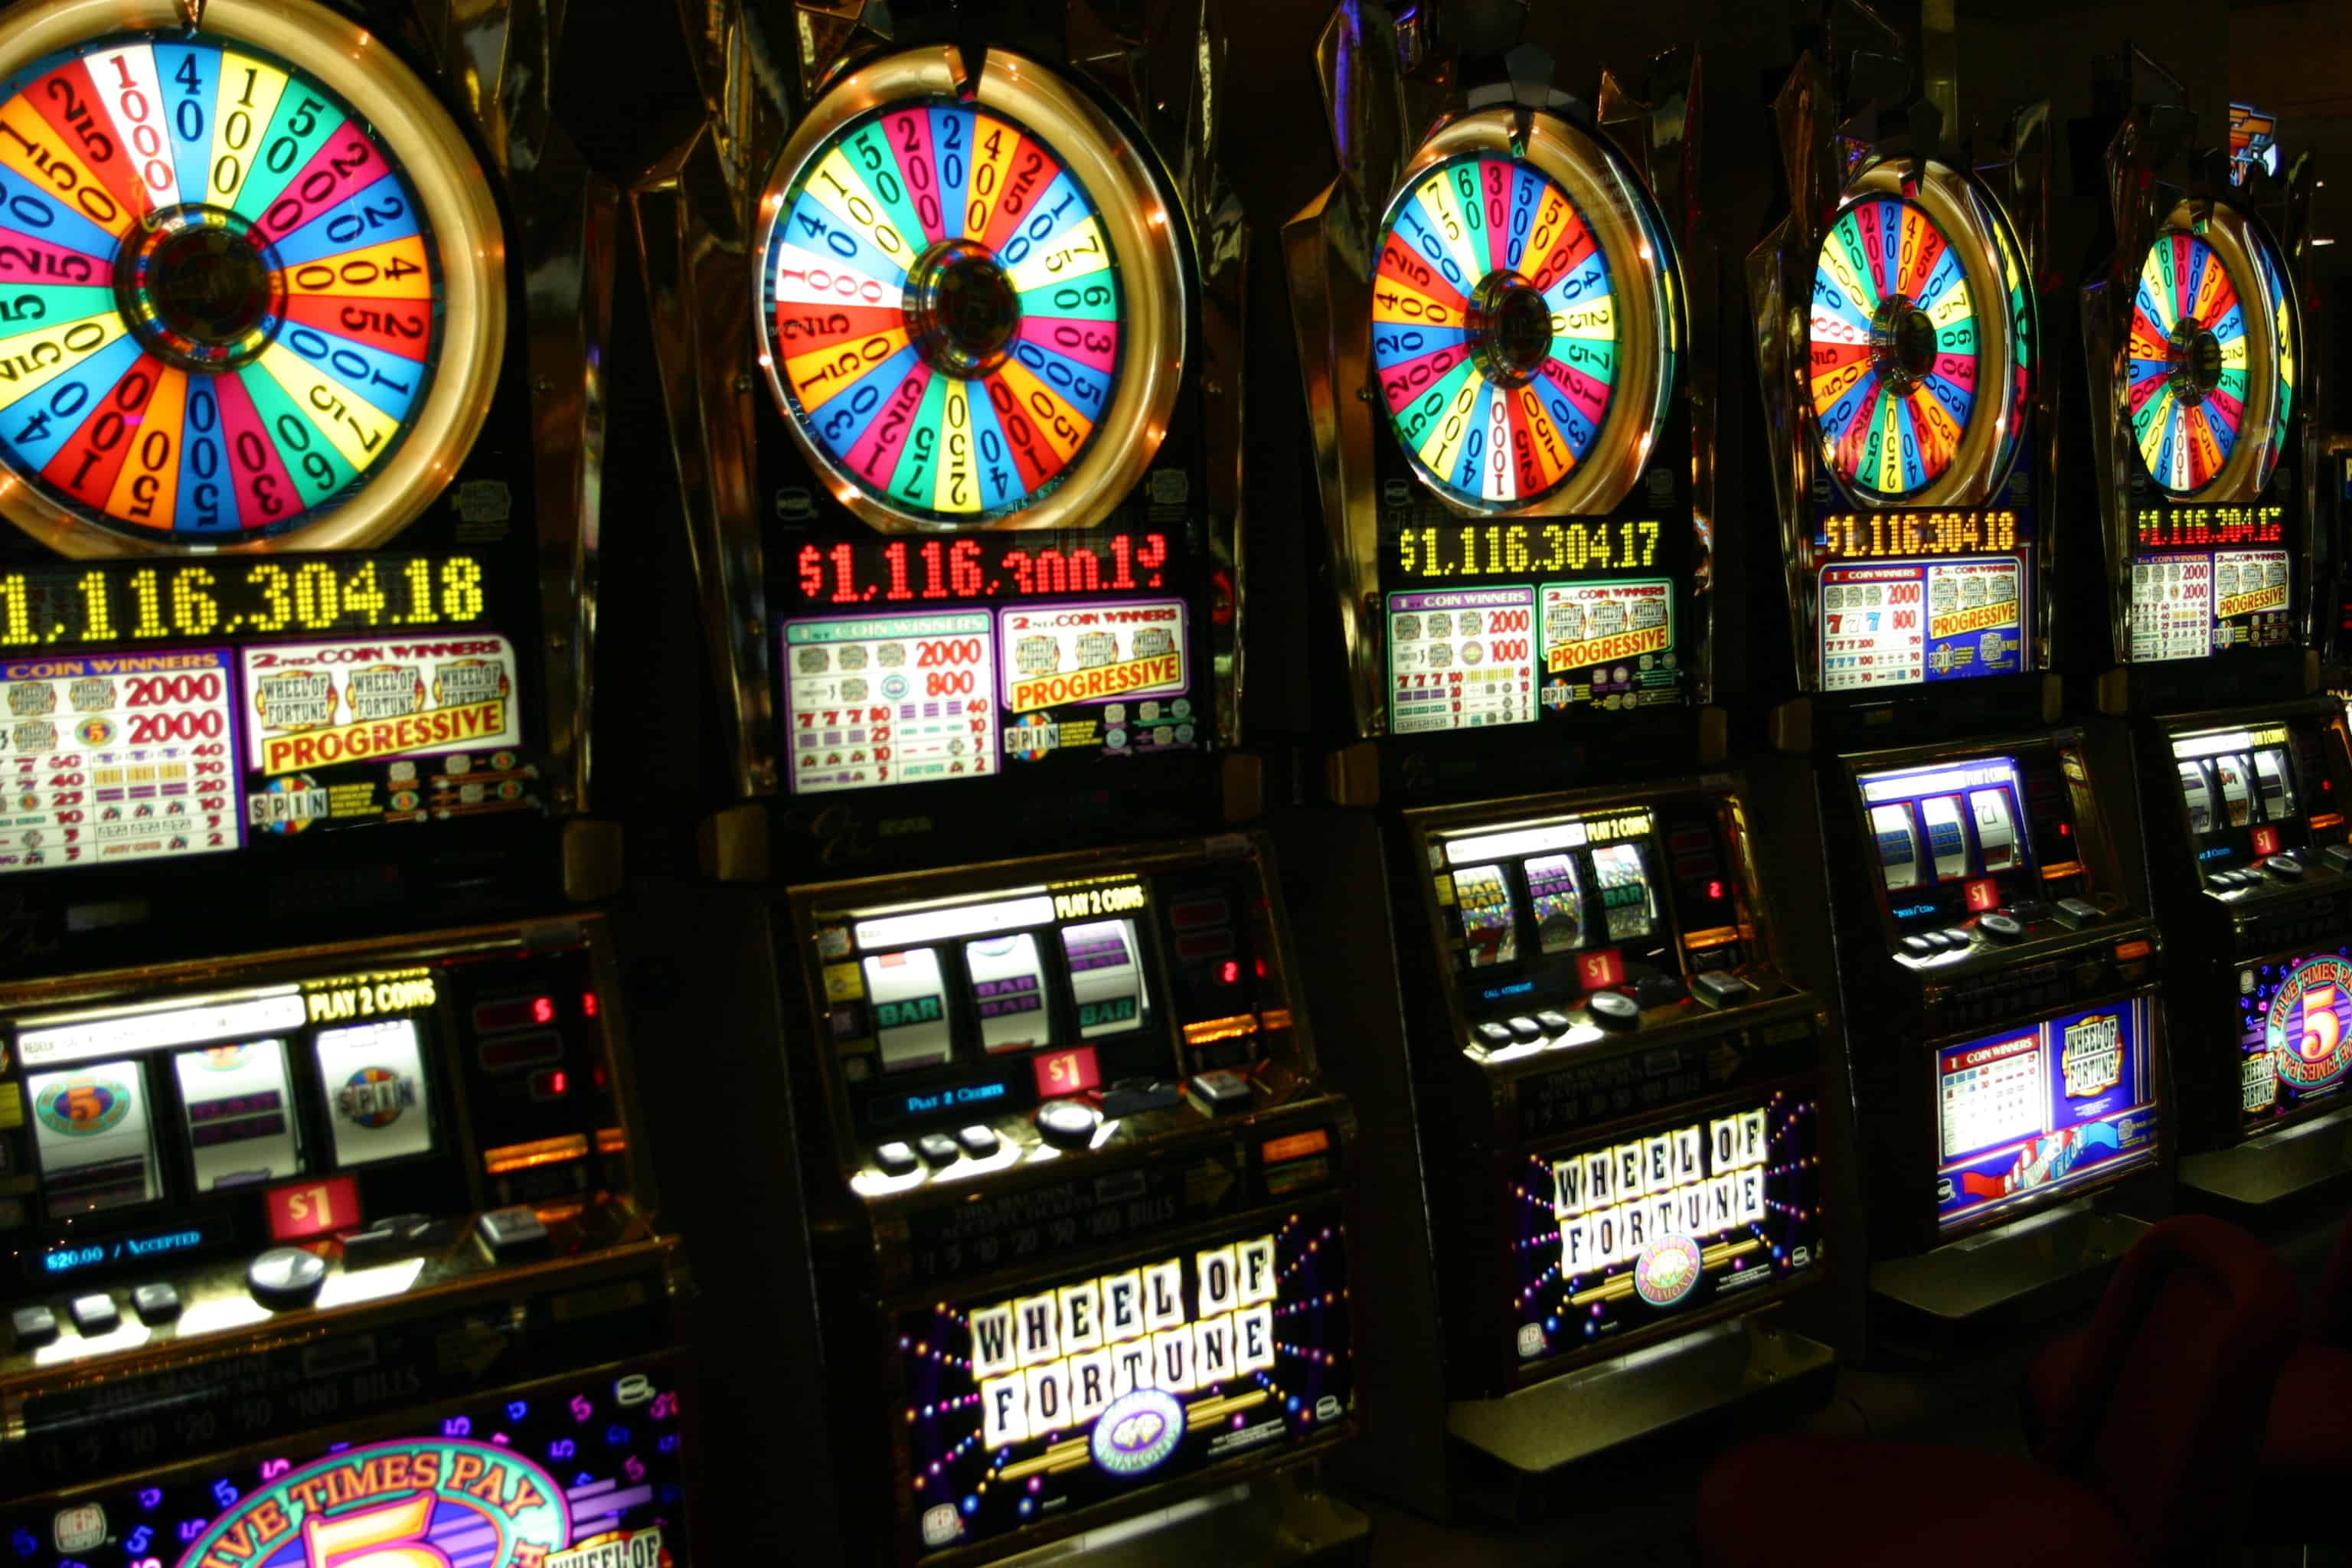 Wheel Of Fortune Slot Machines